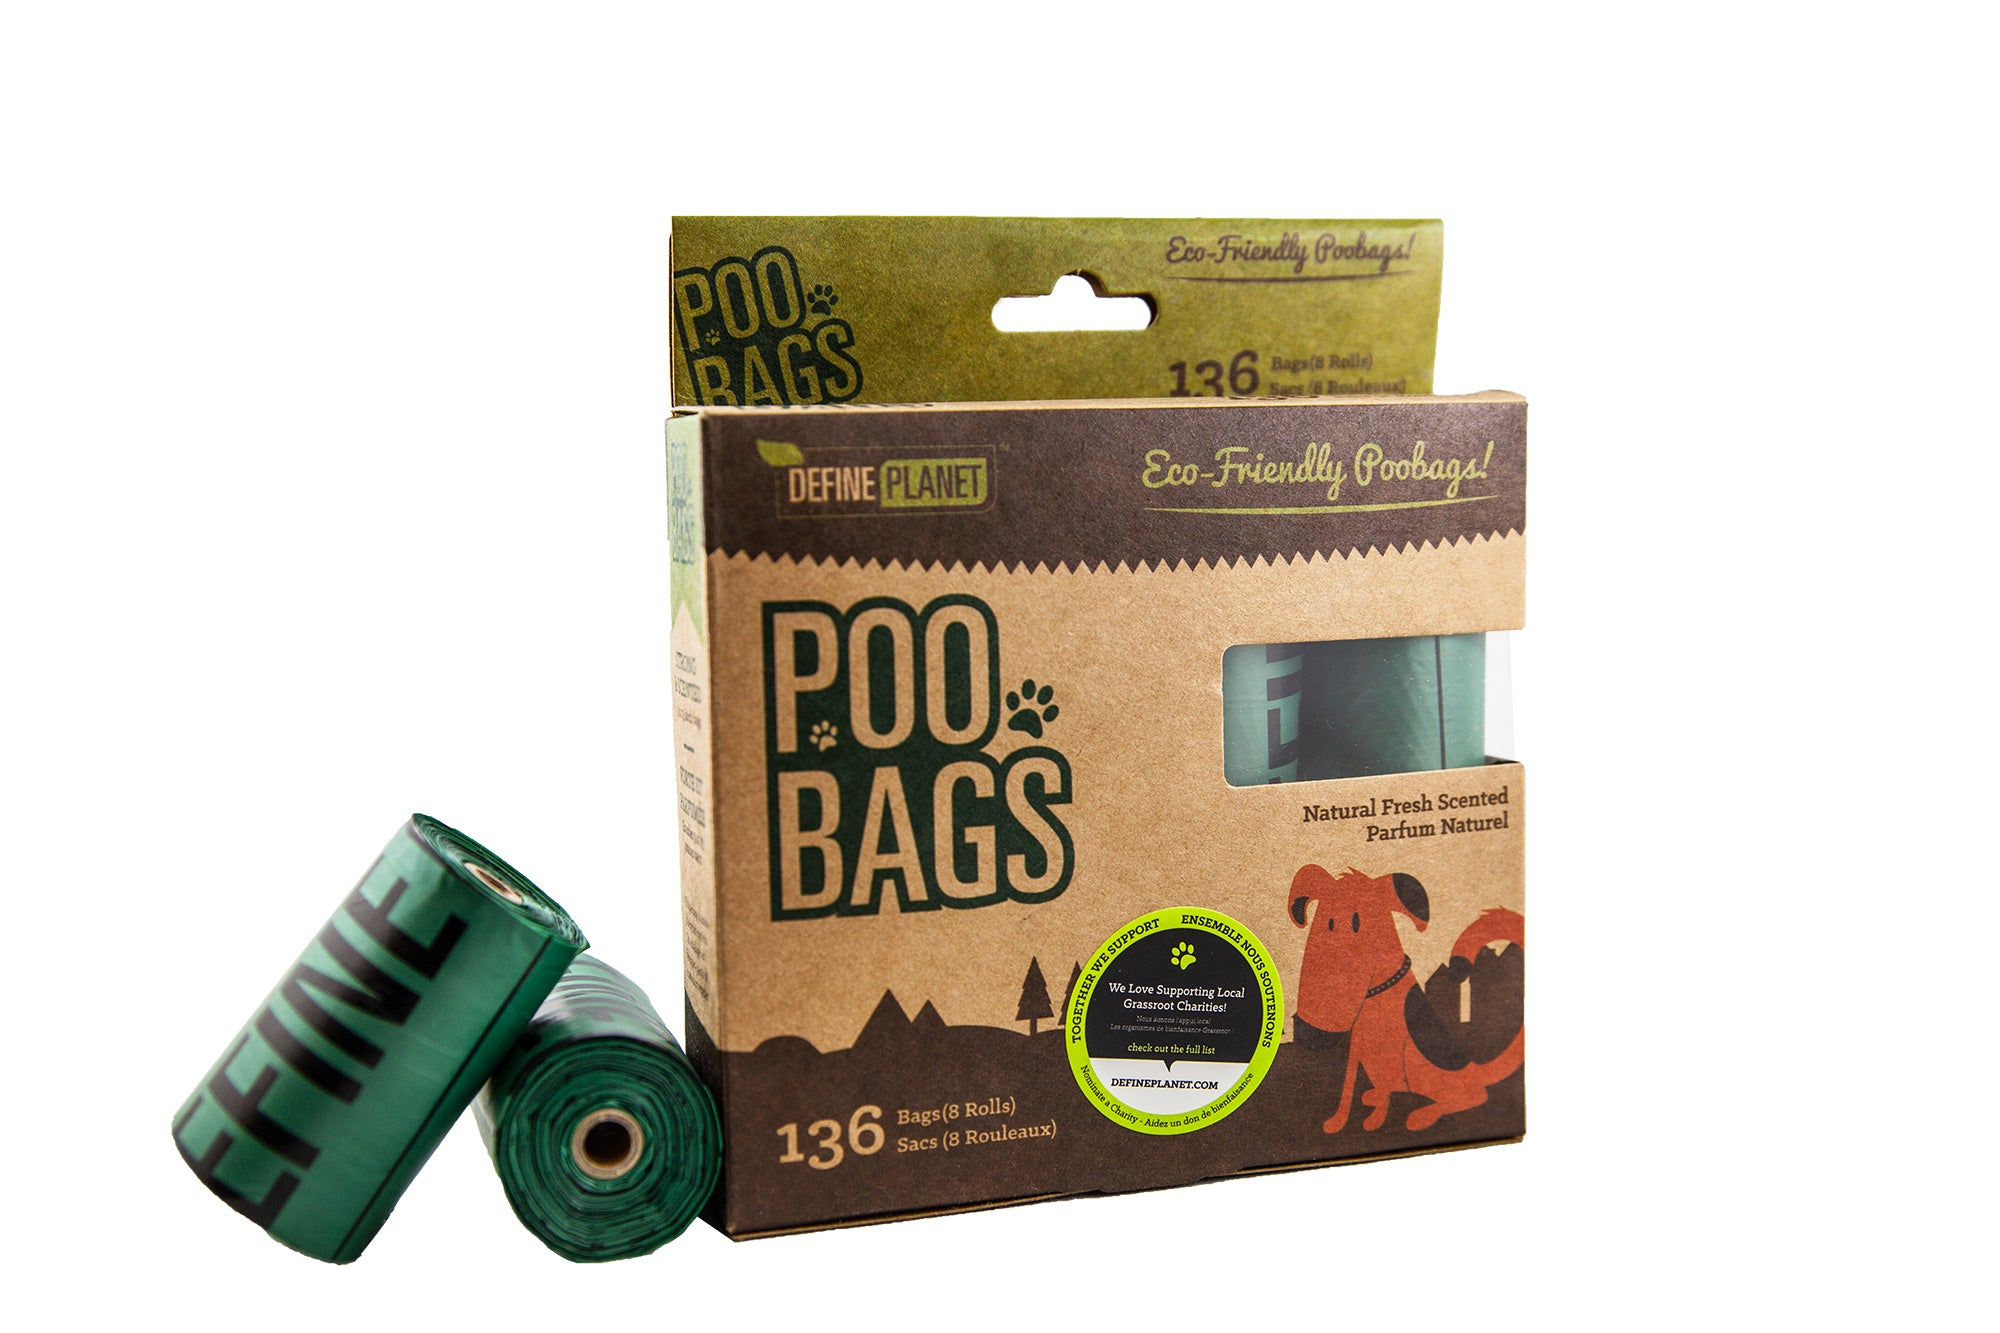 Define Planet Poo Bag Refill Rolls